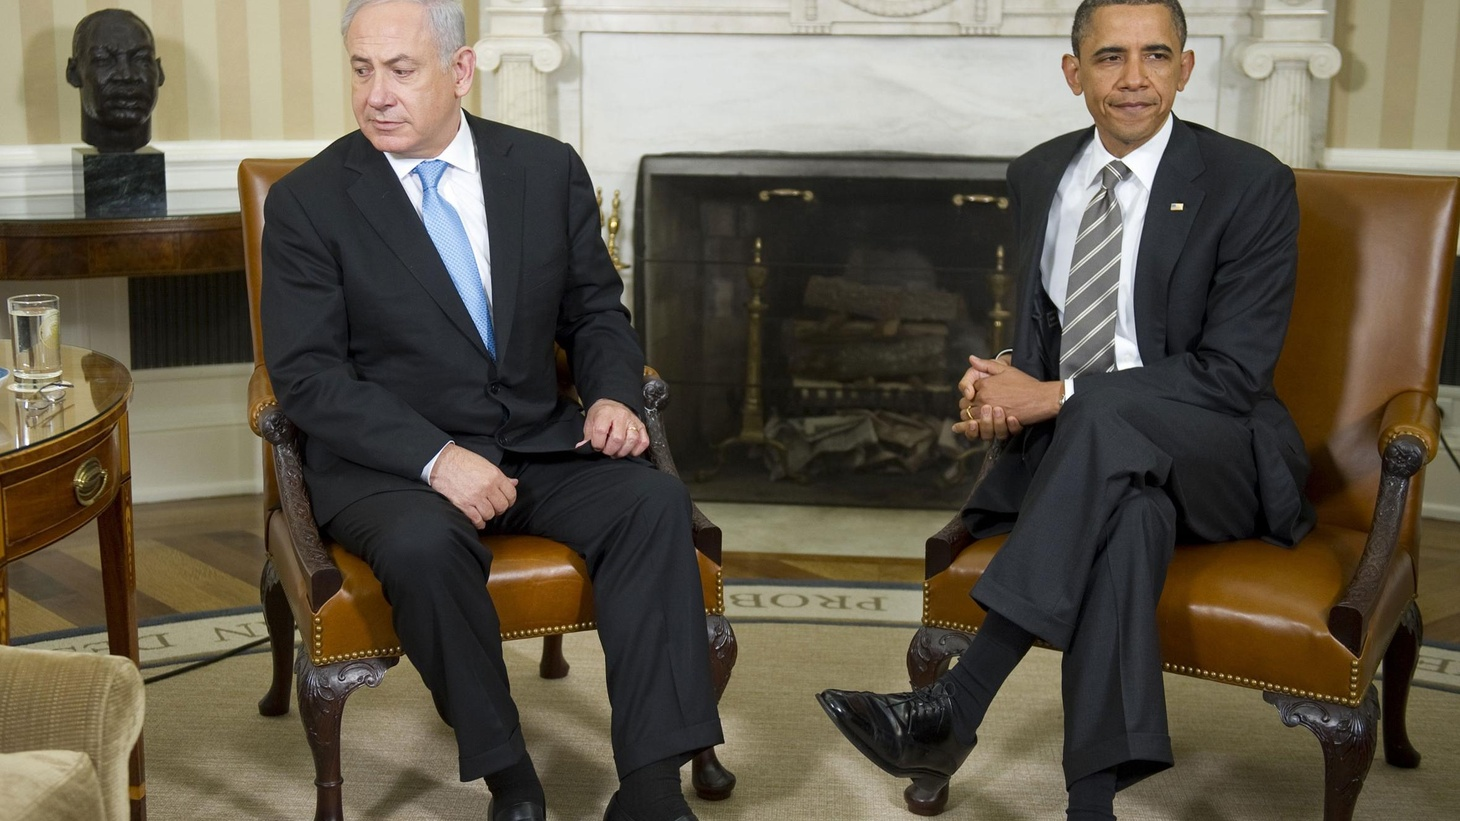 Obama and Israel's Netanyahu strain to compromise, sex scandals of the rich and powerful, Newt's presidential bid hits a snag and Cornel West's broadside against Barack Obama.